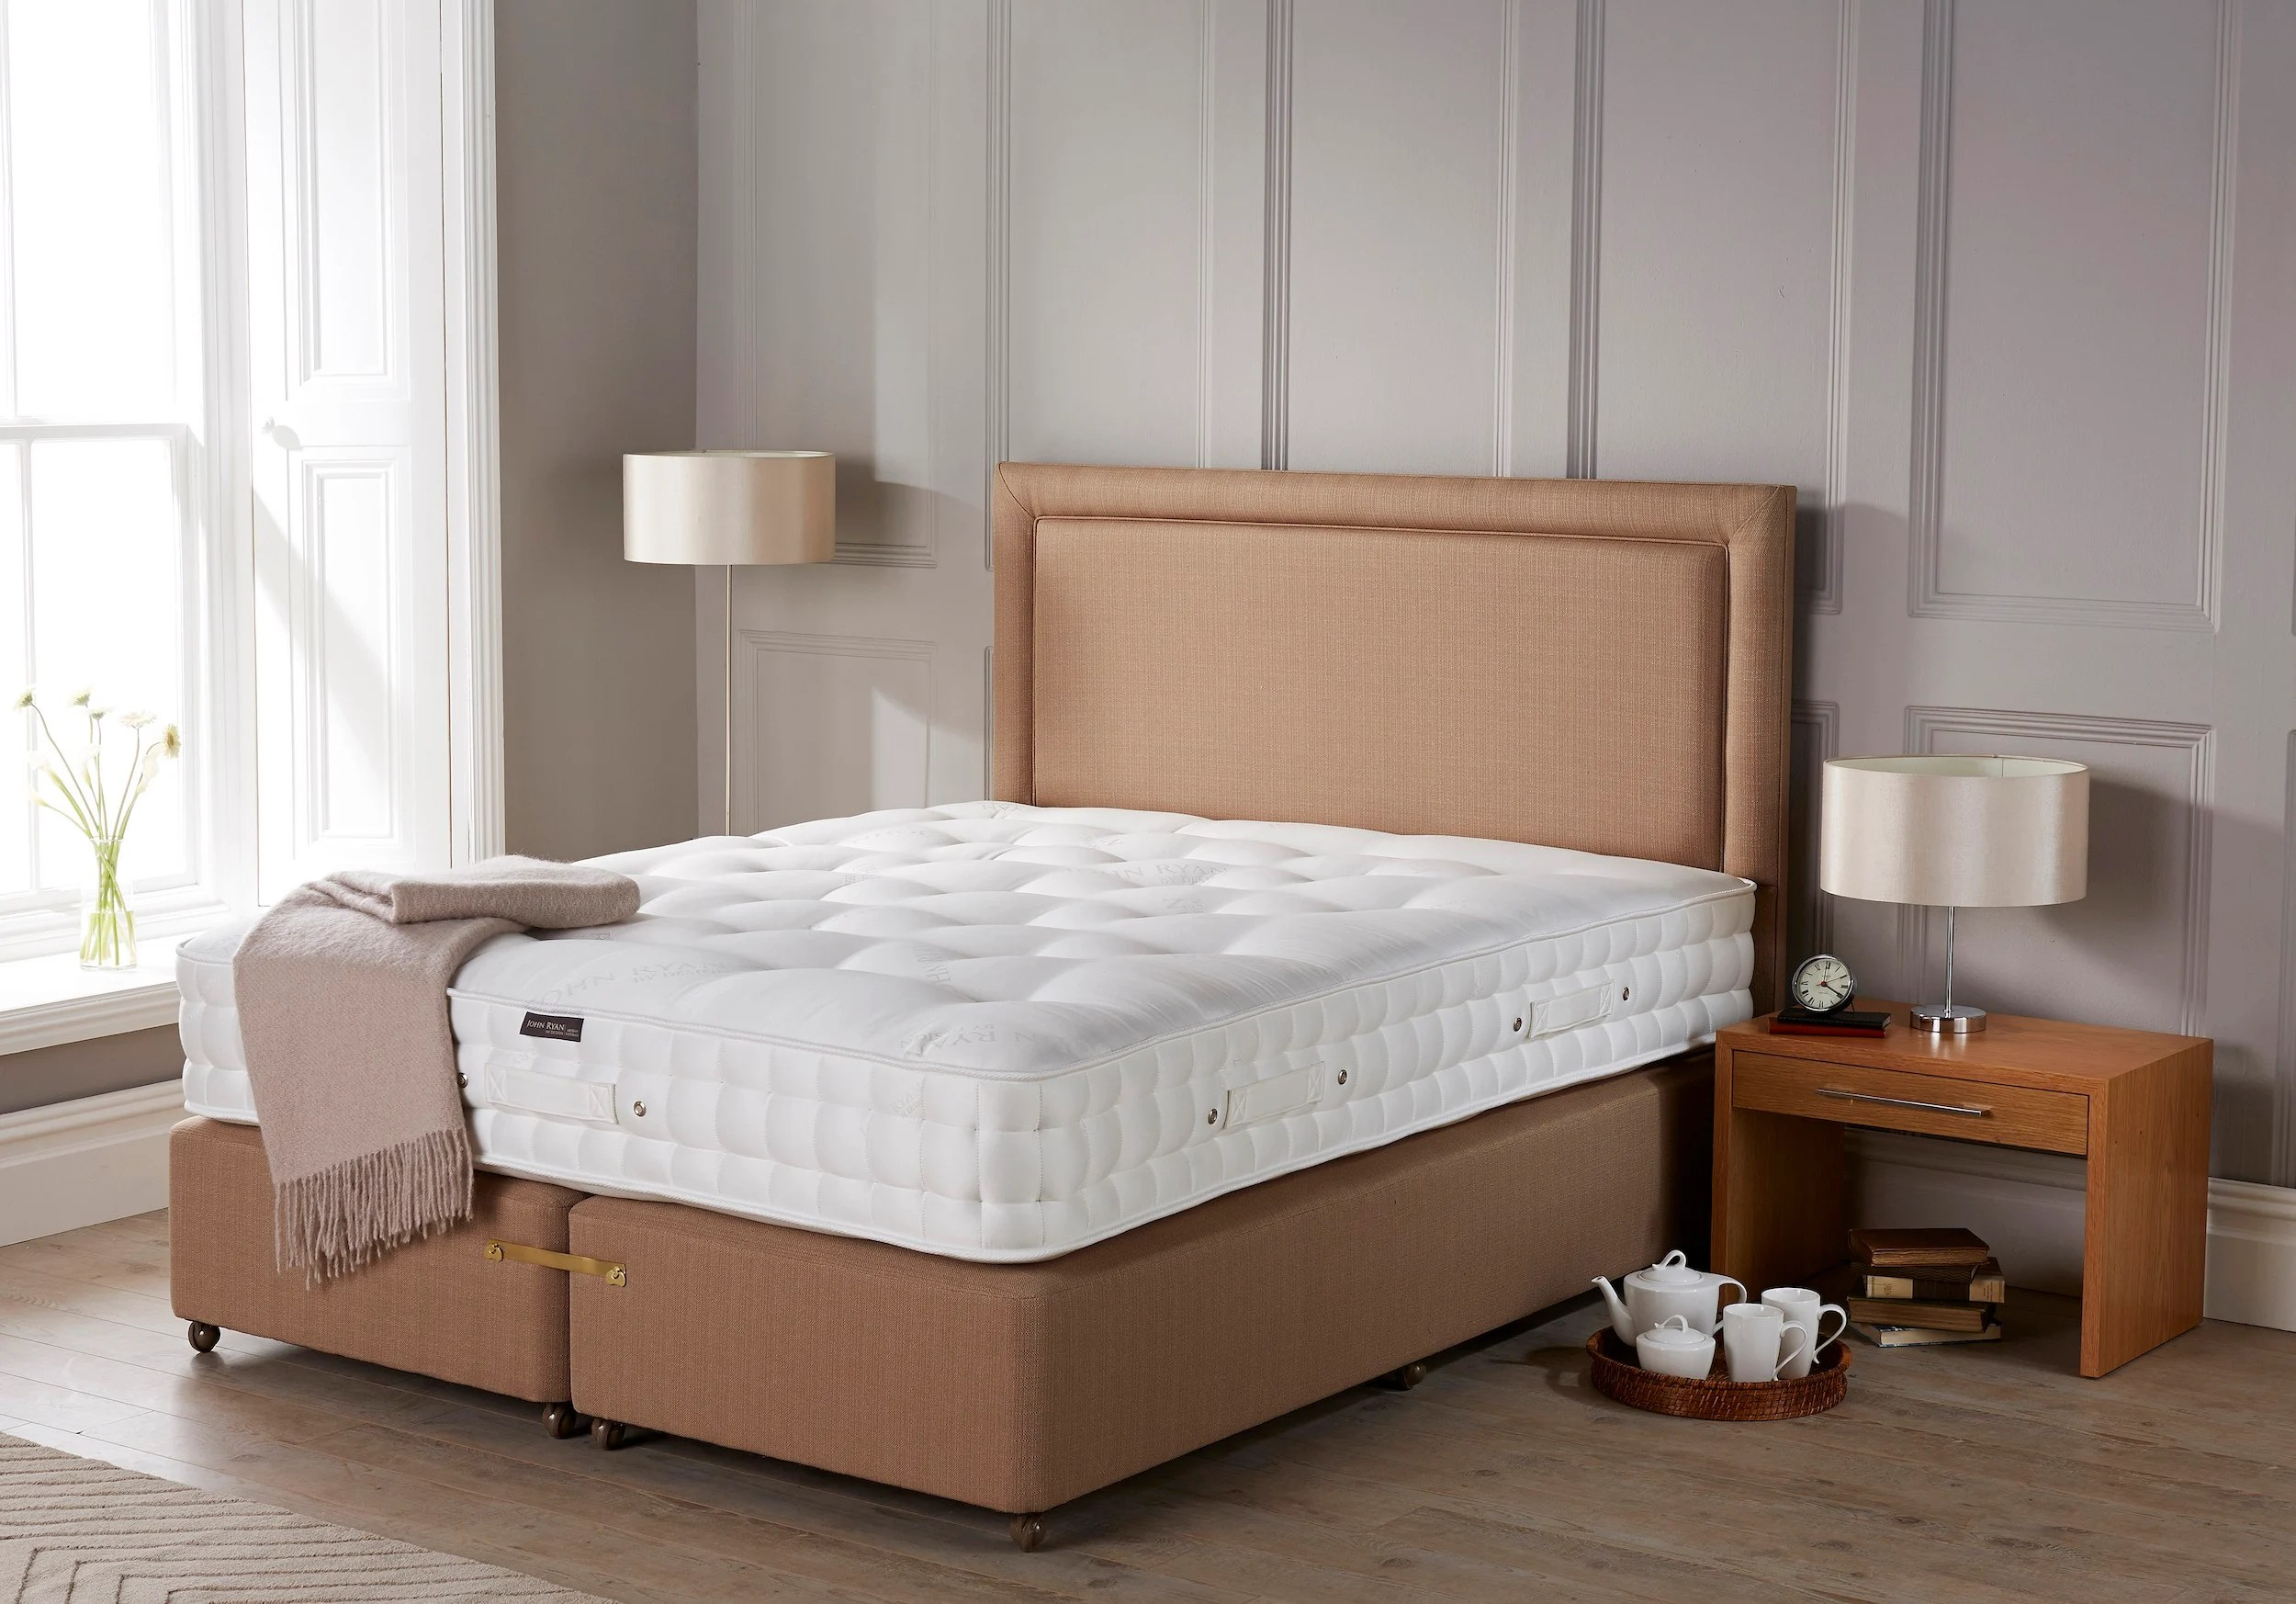 How Big Is A Super King Bed All About Zip And Links Beds Mattresses John Ryan By Design